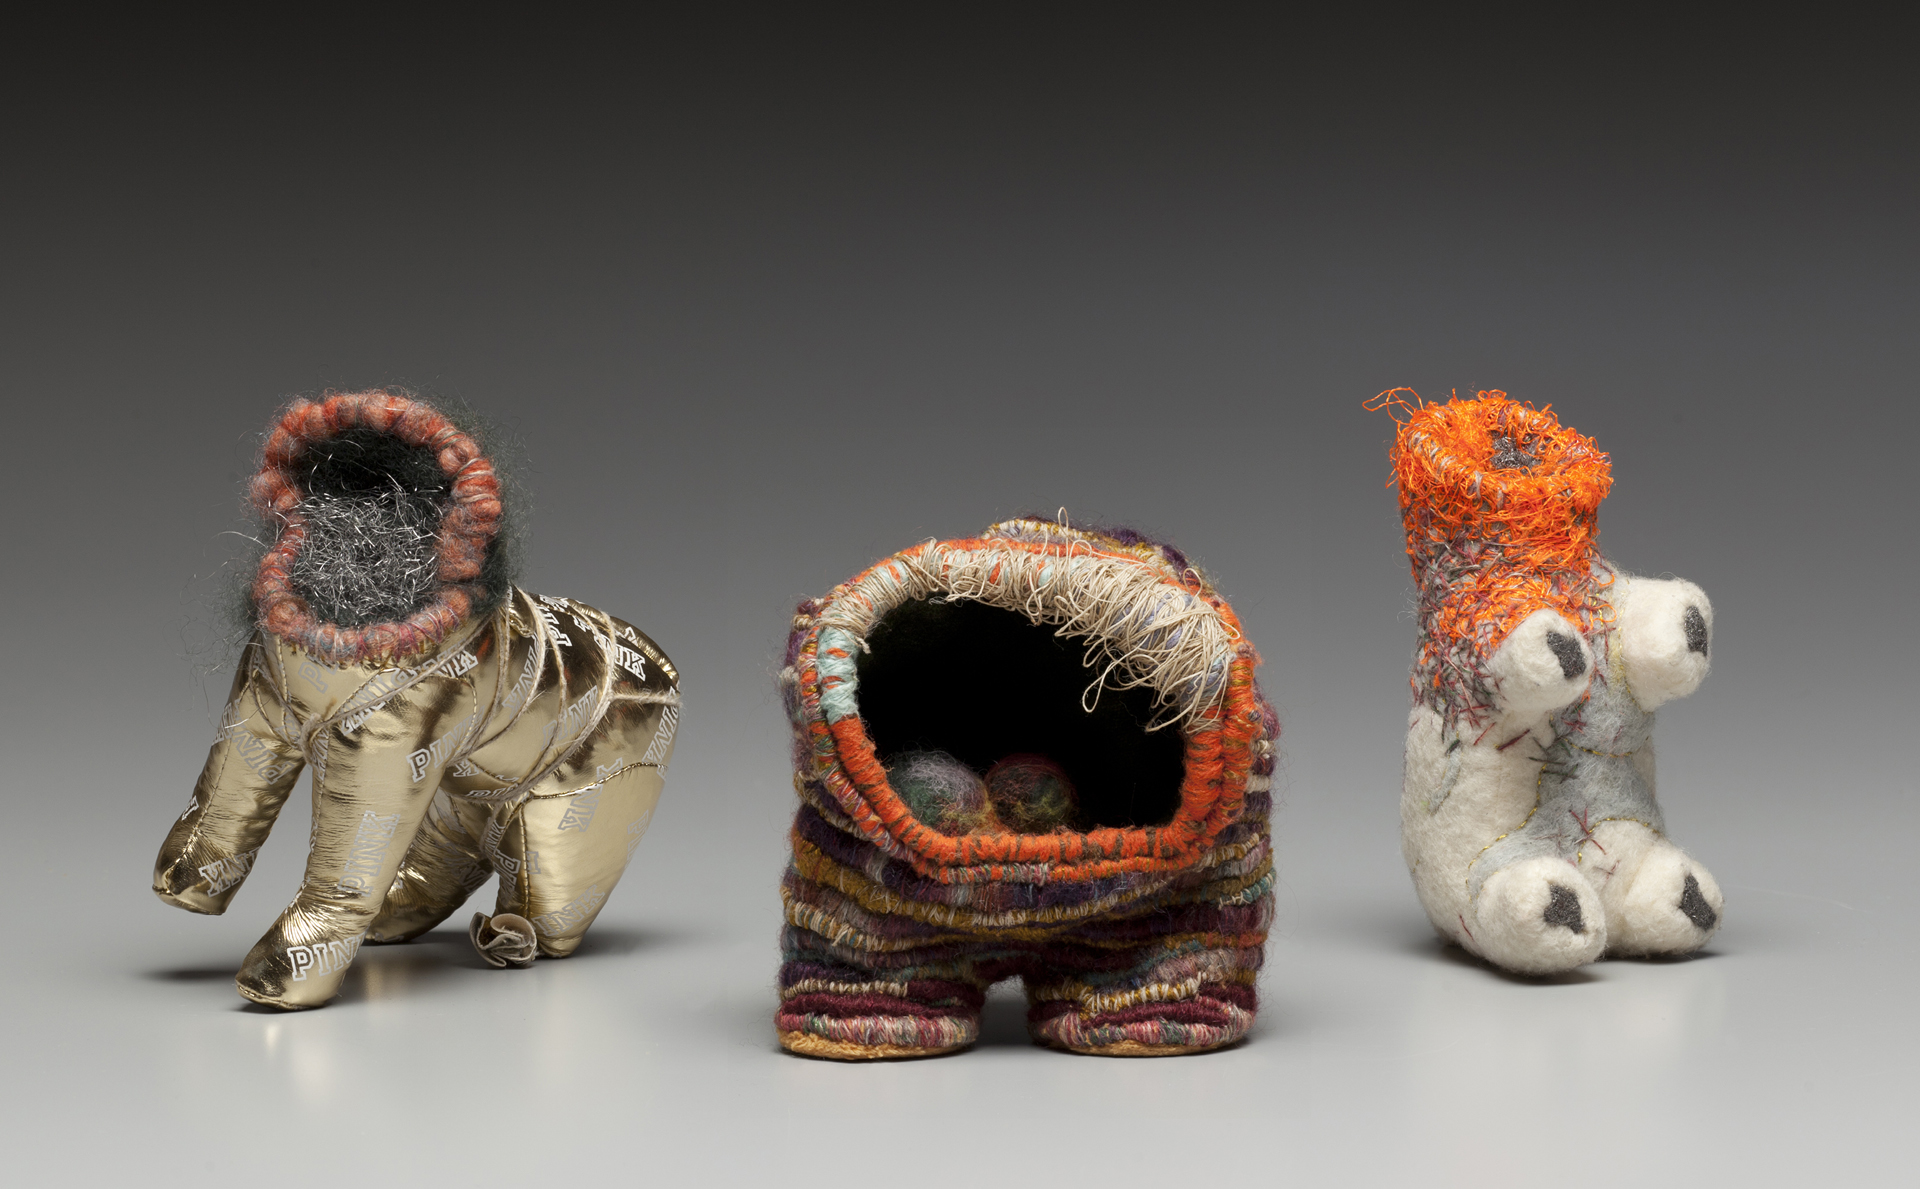 POWER FIGURES | Stuffed toys, steel wool, mixed threads, needlefelted wool, 6.5x5.5x4, 5x4.5x3.5, 5.25x3.5x3 inches – 2015